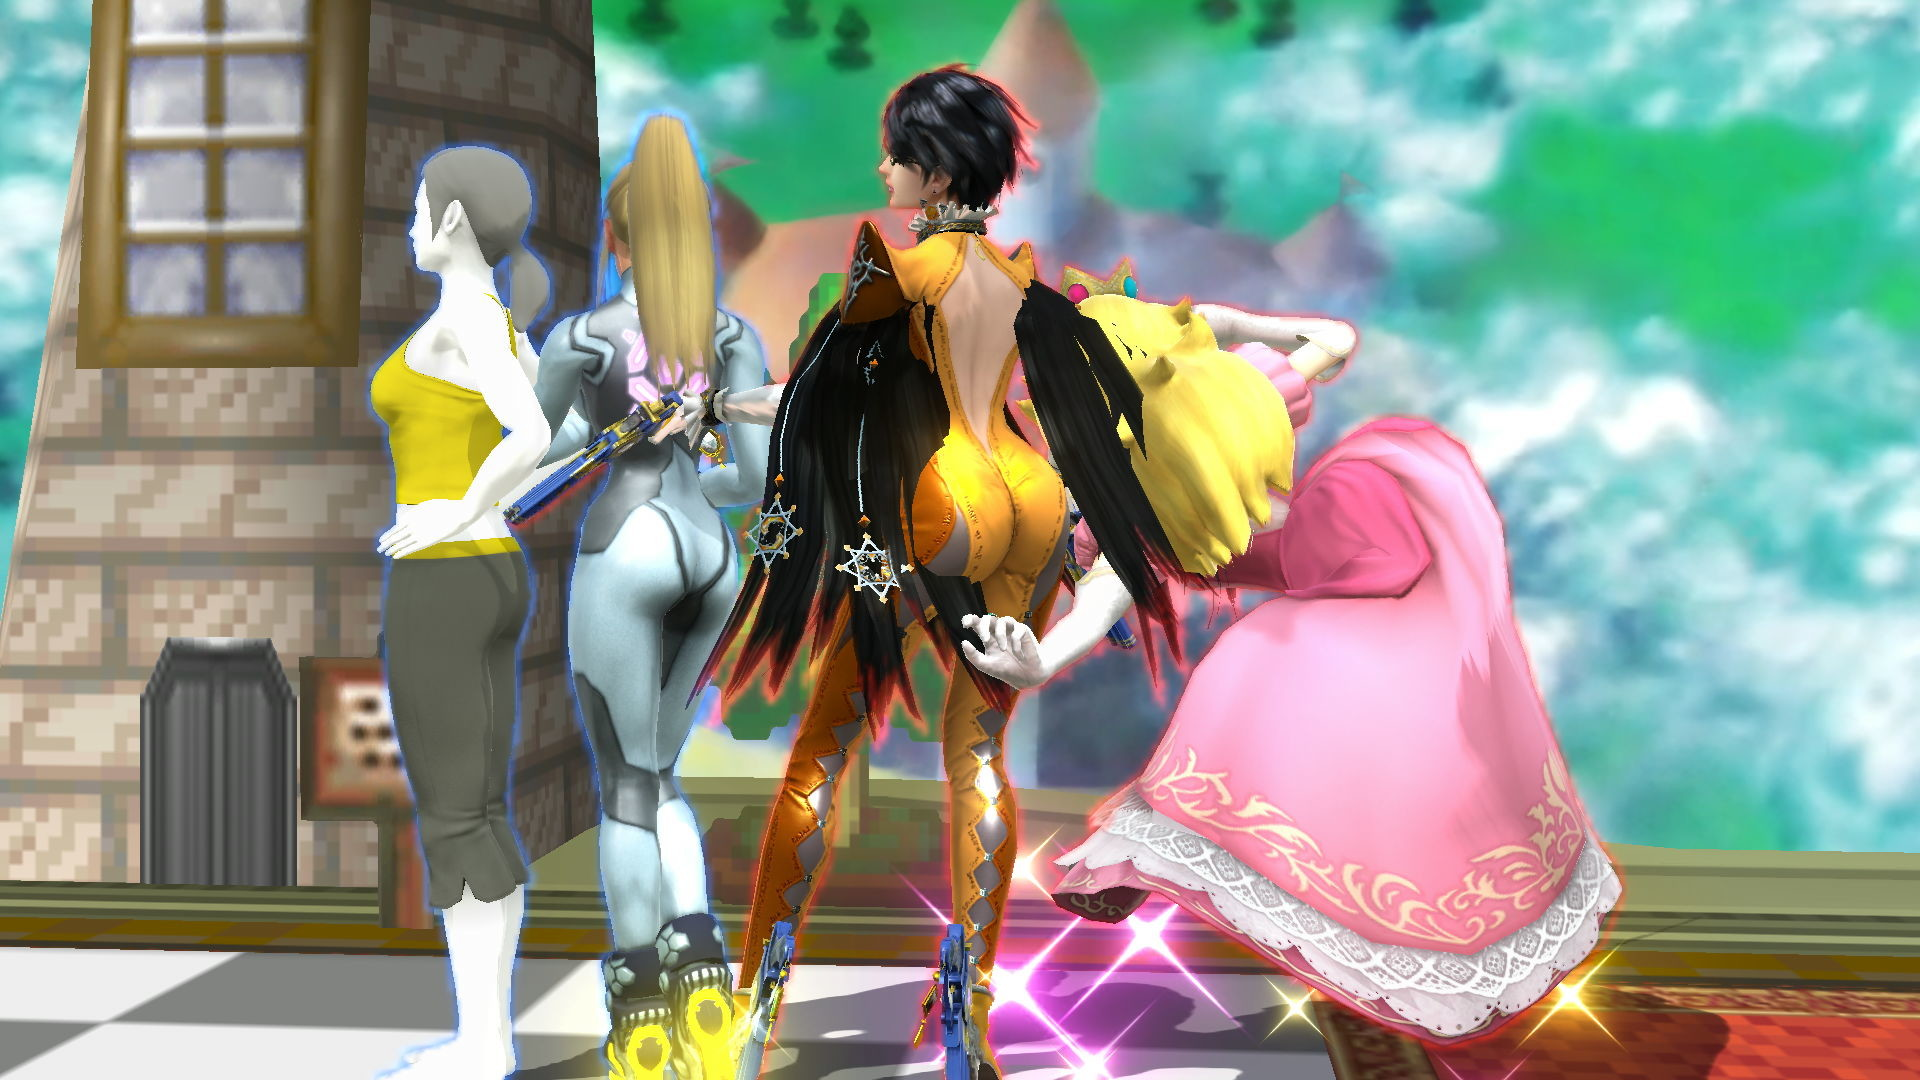 1920x1080 Bayonetta's BOOTY is WAY BIGGER than I remember - Super Smash Bros. for Wii  U Message Board for Wii U - GameFAQs